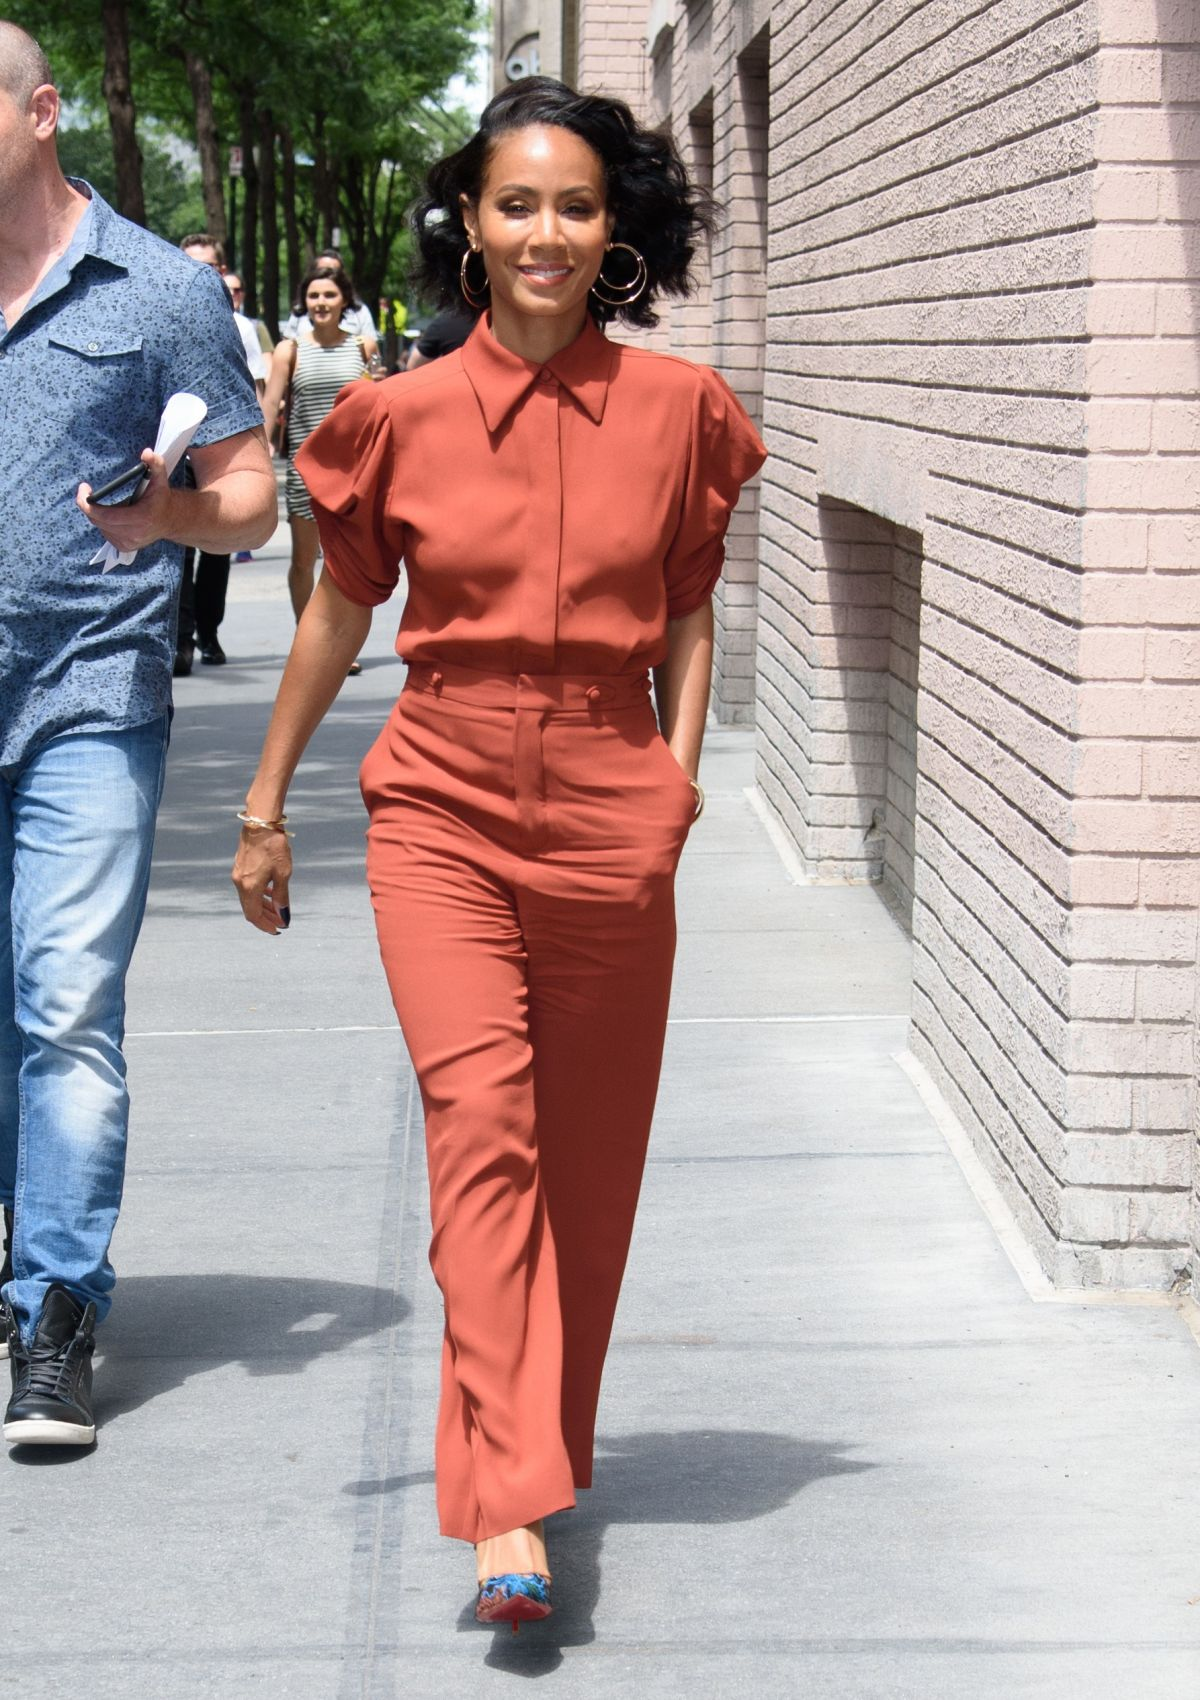 JADA PINKETT SMITH at The View in New York 07/17/2017